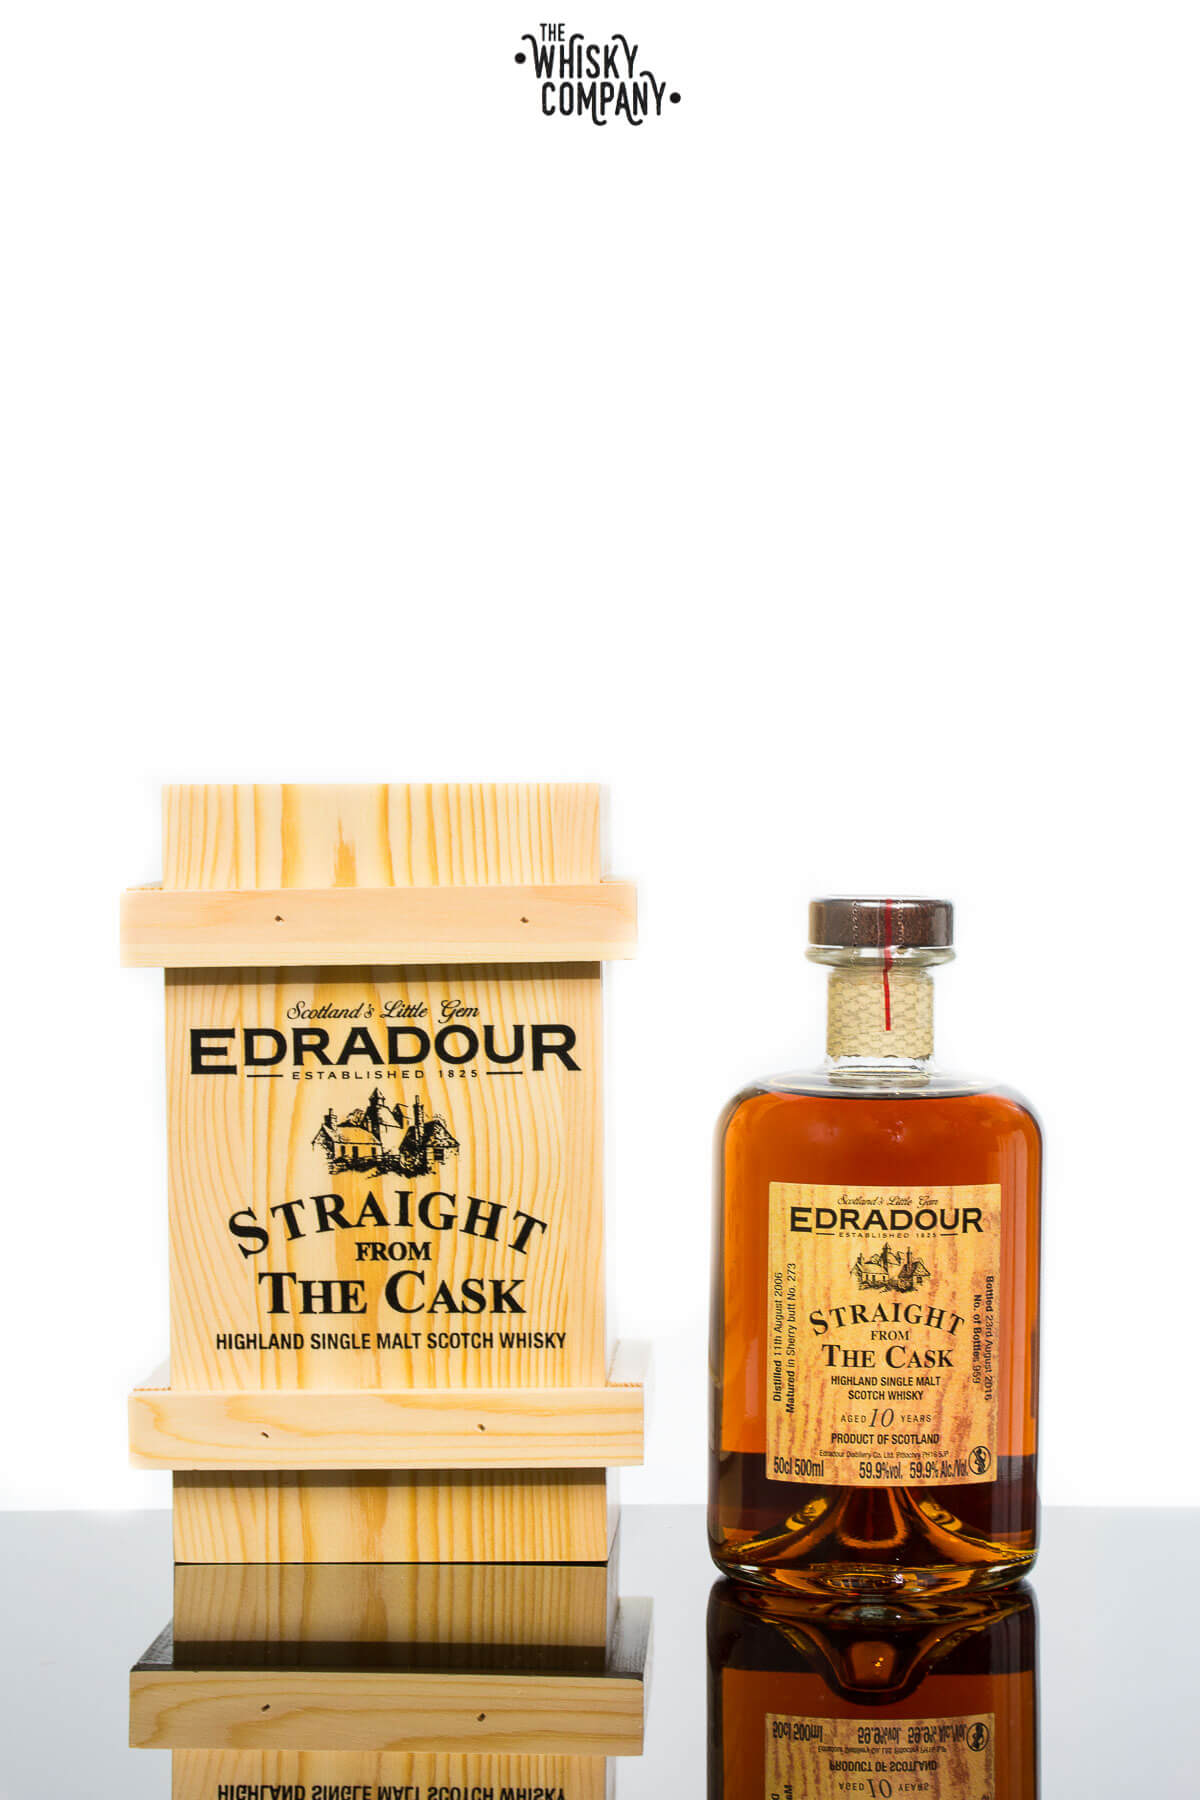 Edradour Aged 10 Years Straight From The Cask Highland Single Malt Scotch Whisky (700ml)